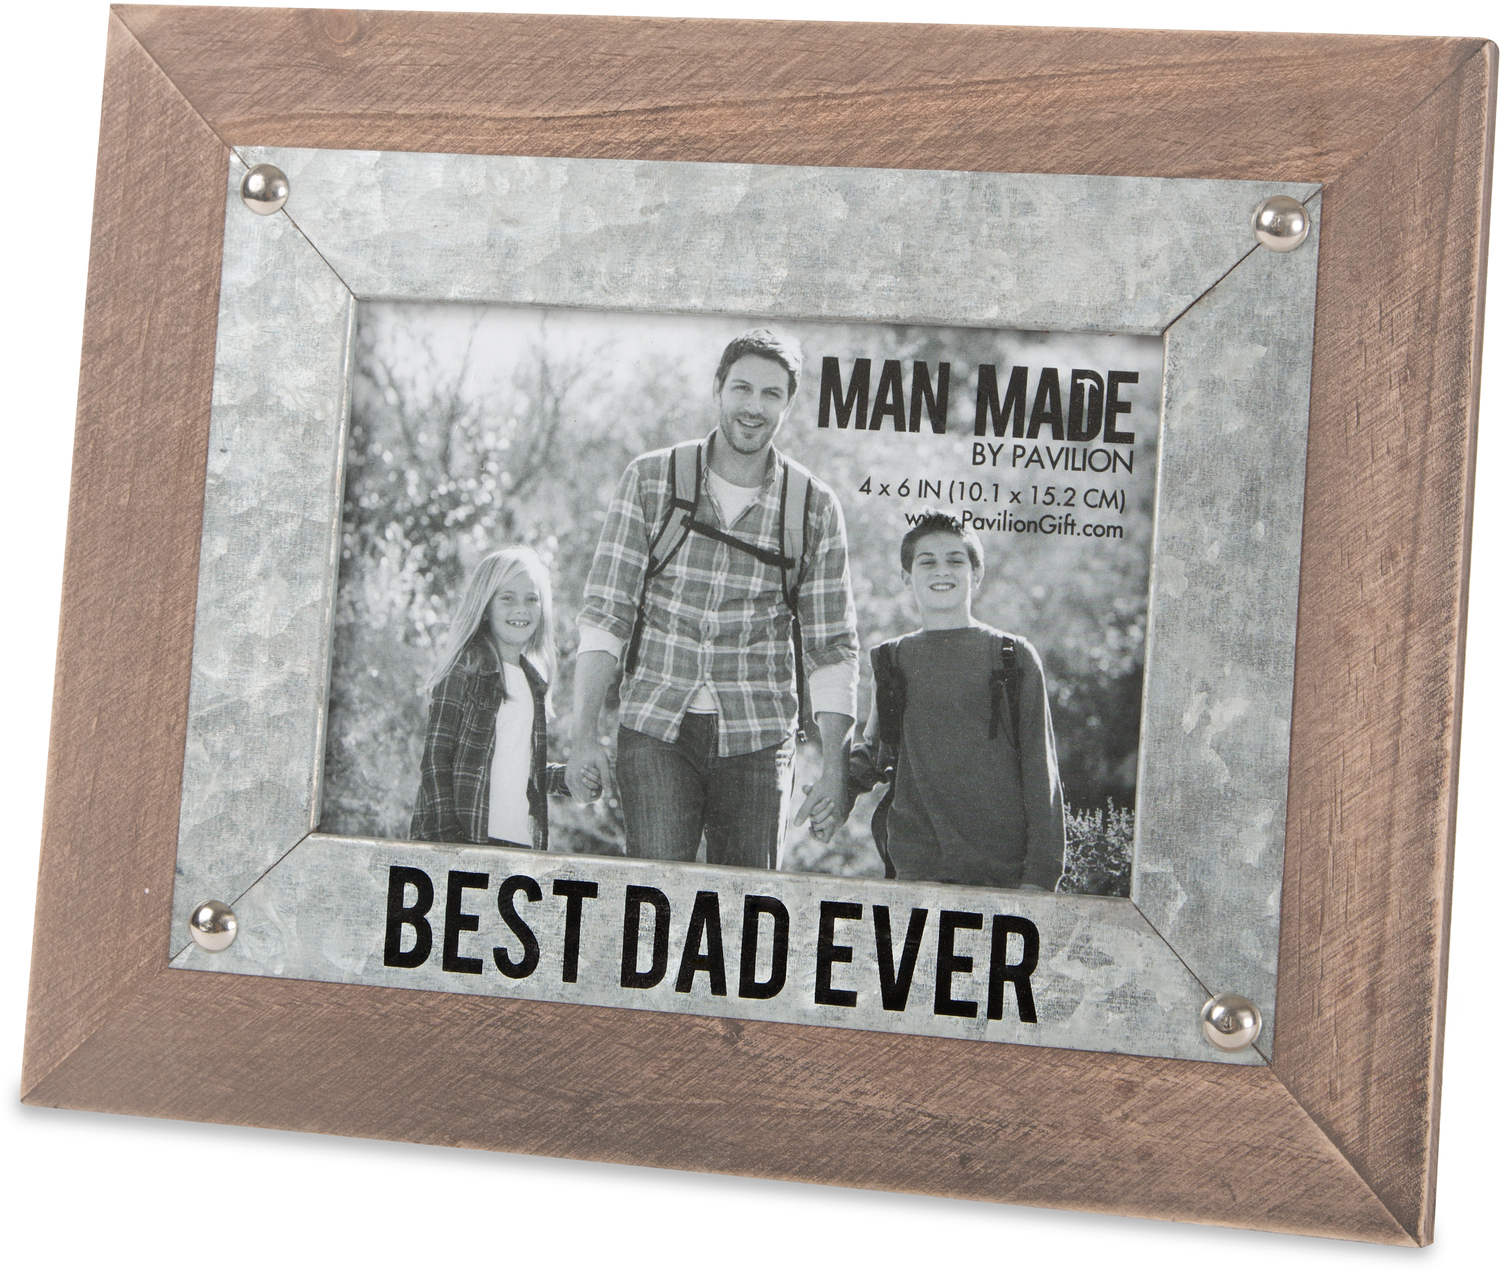 "Best Dad by Man Made - Best Dad - 9.5"" x 7.5"" Frame (Holds 4"" x 6"" Photo)"